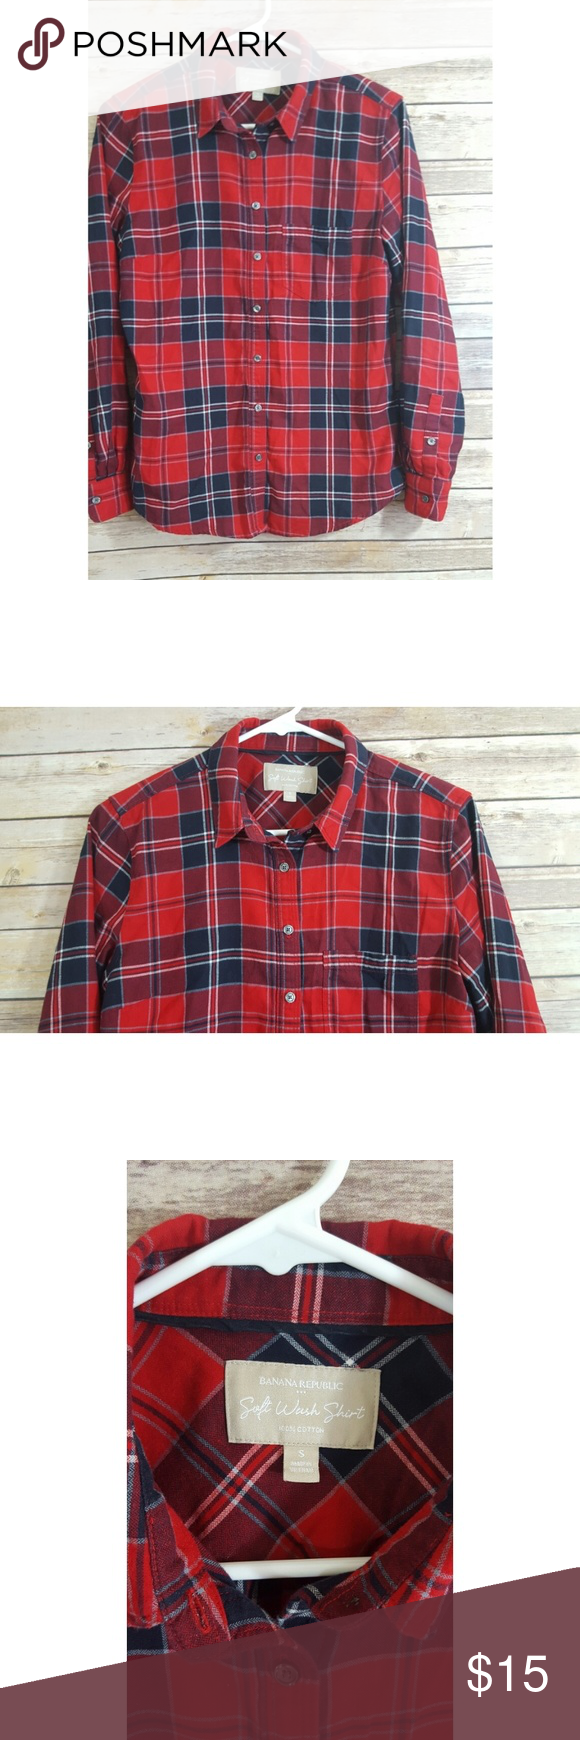 Red plaid flannel jacket  Banana Republic Factory Soft Wash Shirt Size S Great used Condition